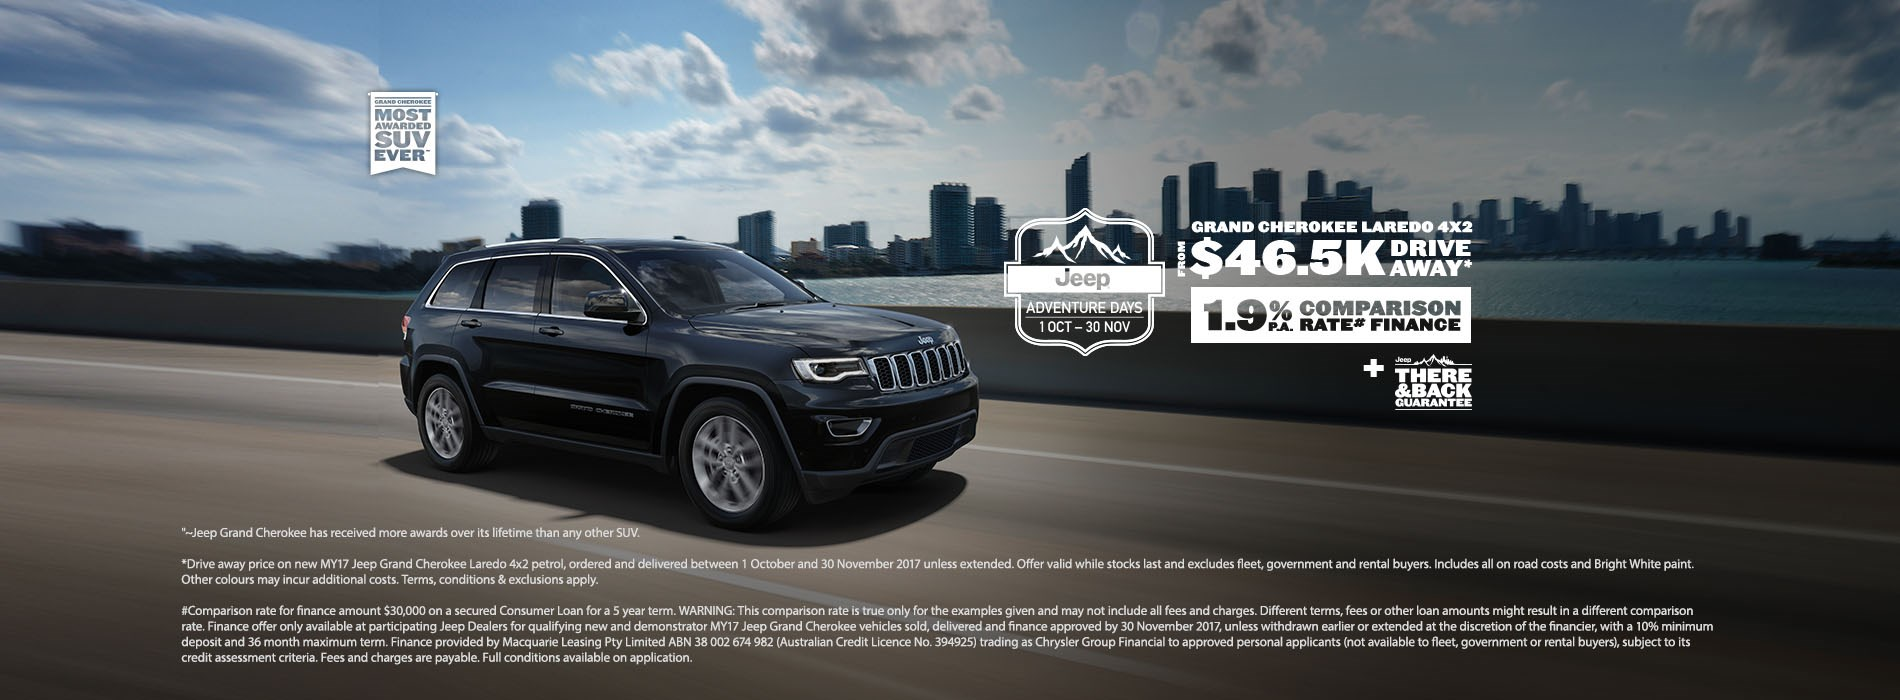 Jeep Grand Cherokee Laredo 4x2 $46.5K Drive Away Offer